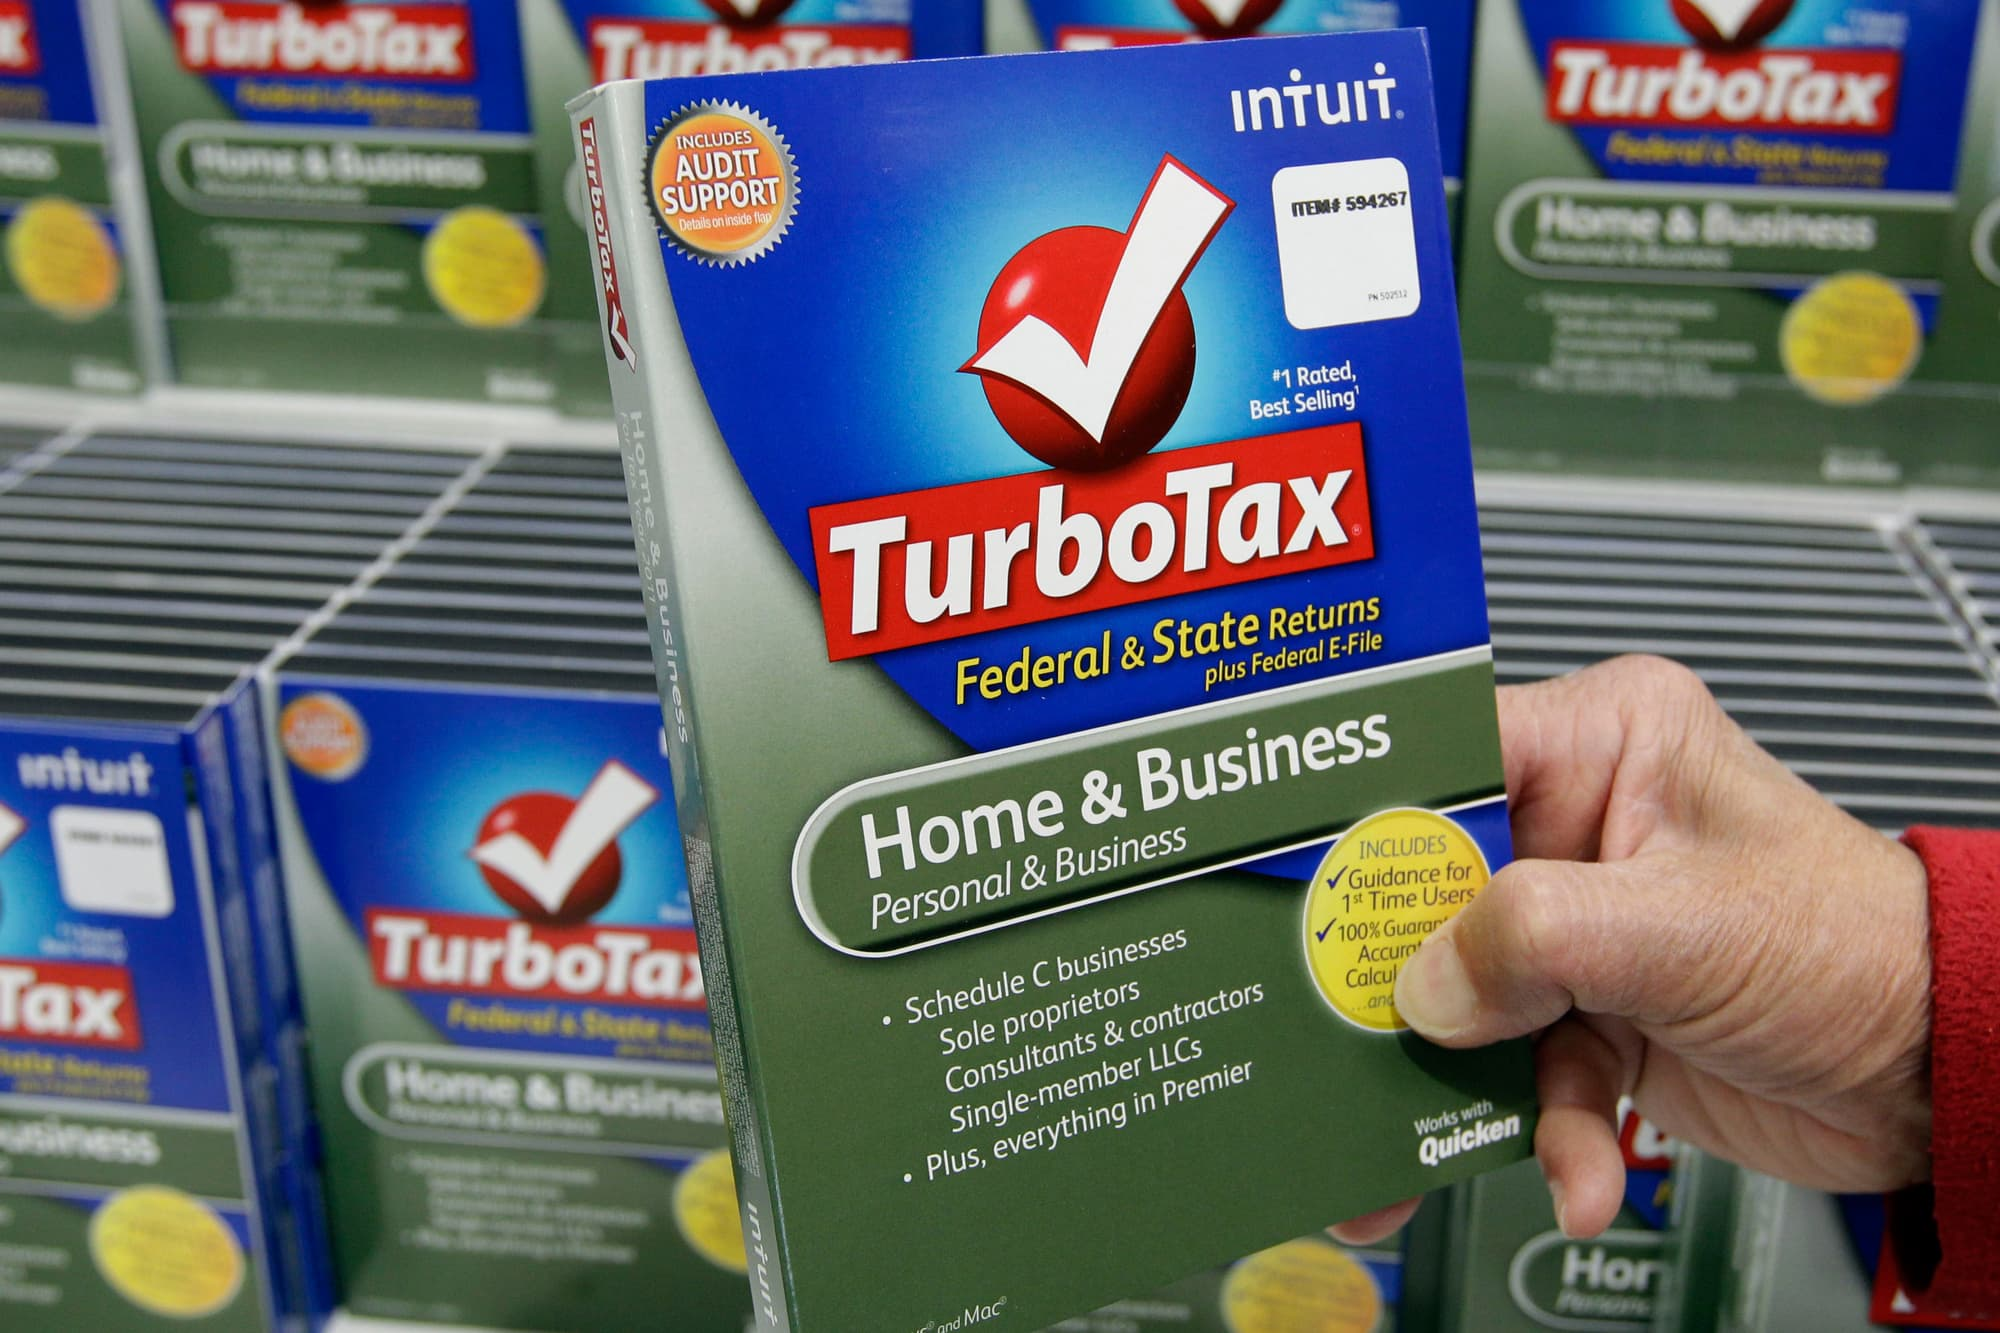 Costco Turbotax Home And Business 2020.Citing Fraud Concerns Minn Won T Accept Turbotax Returns